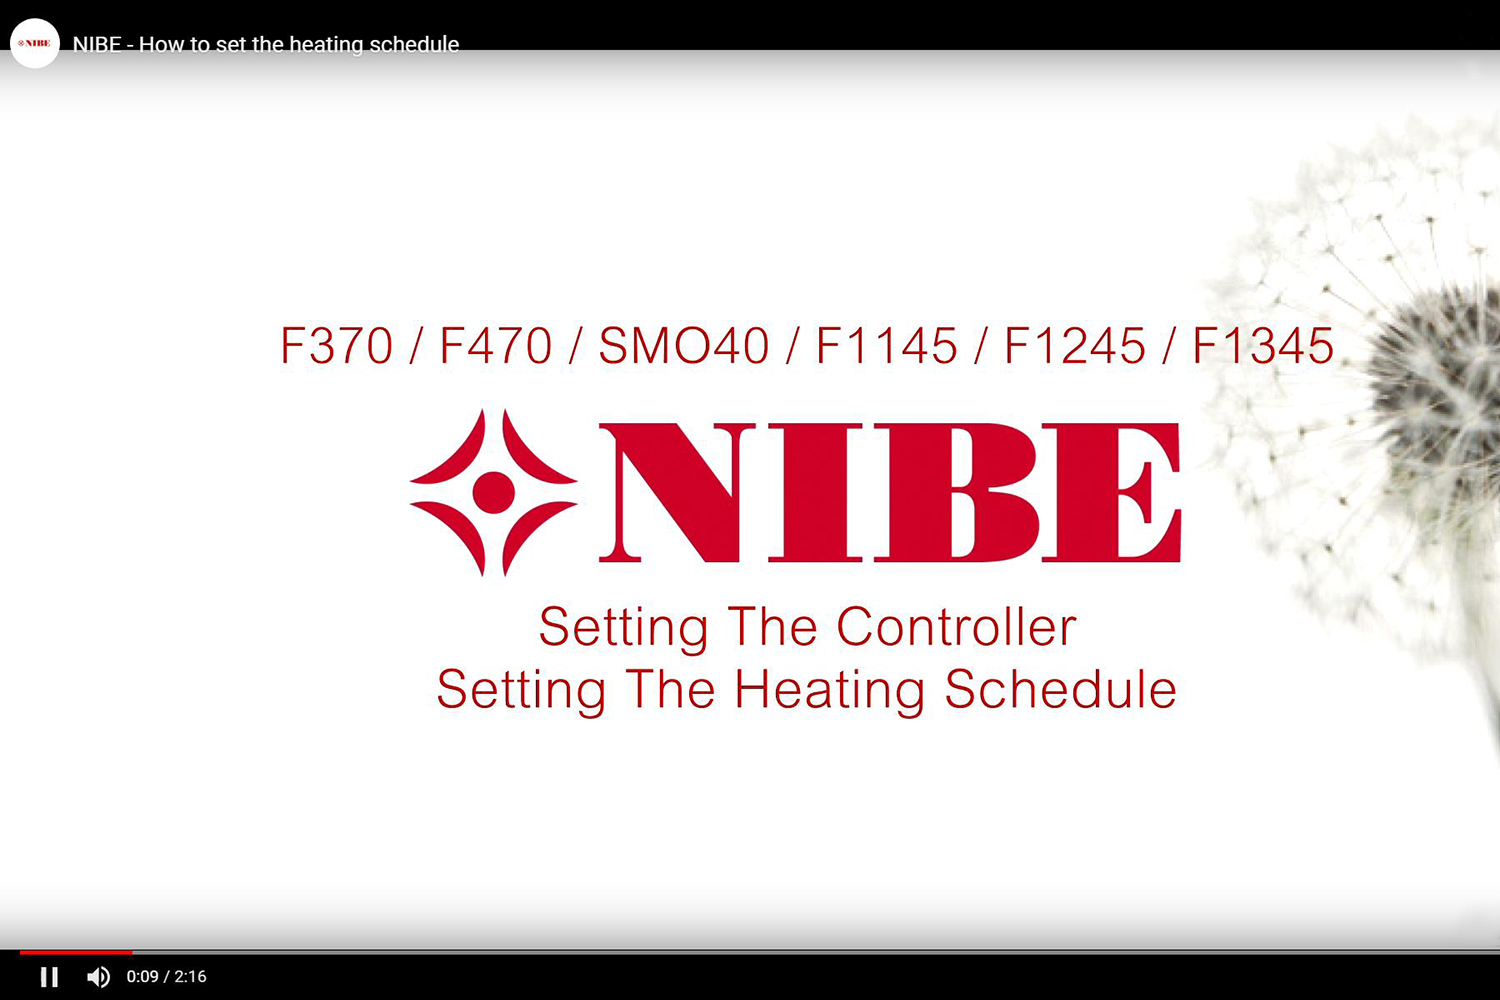 How do I clean the air filter on my exhaust air heat pump? How do I find the serial number on my heat pump? - Go to the NIBE 'How to' videos.